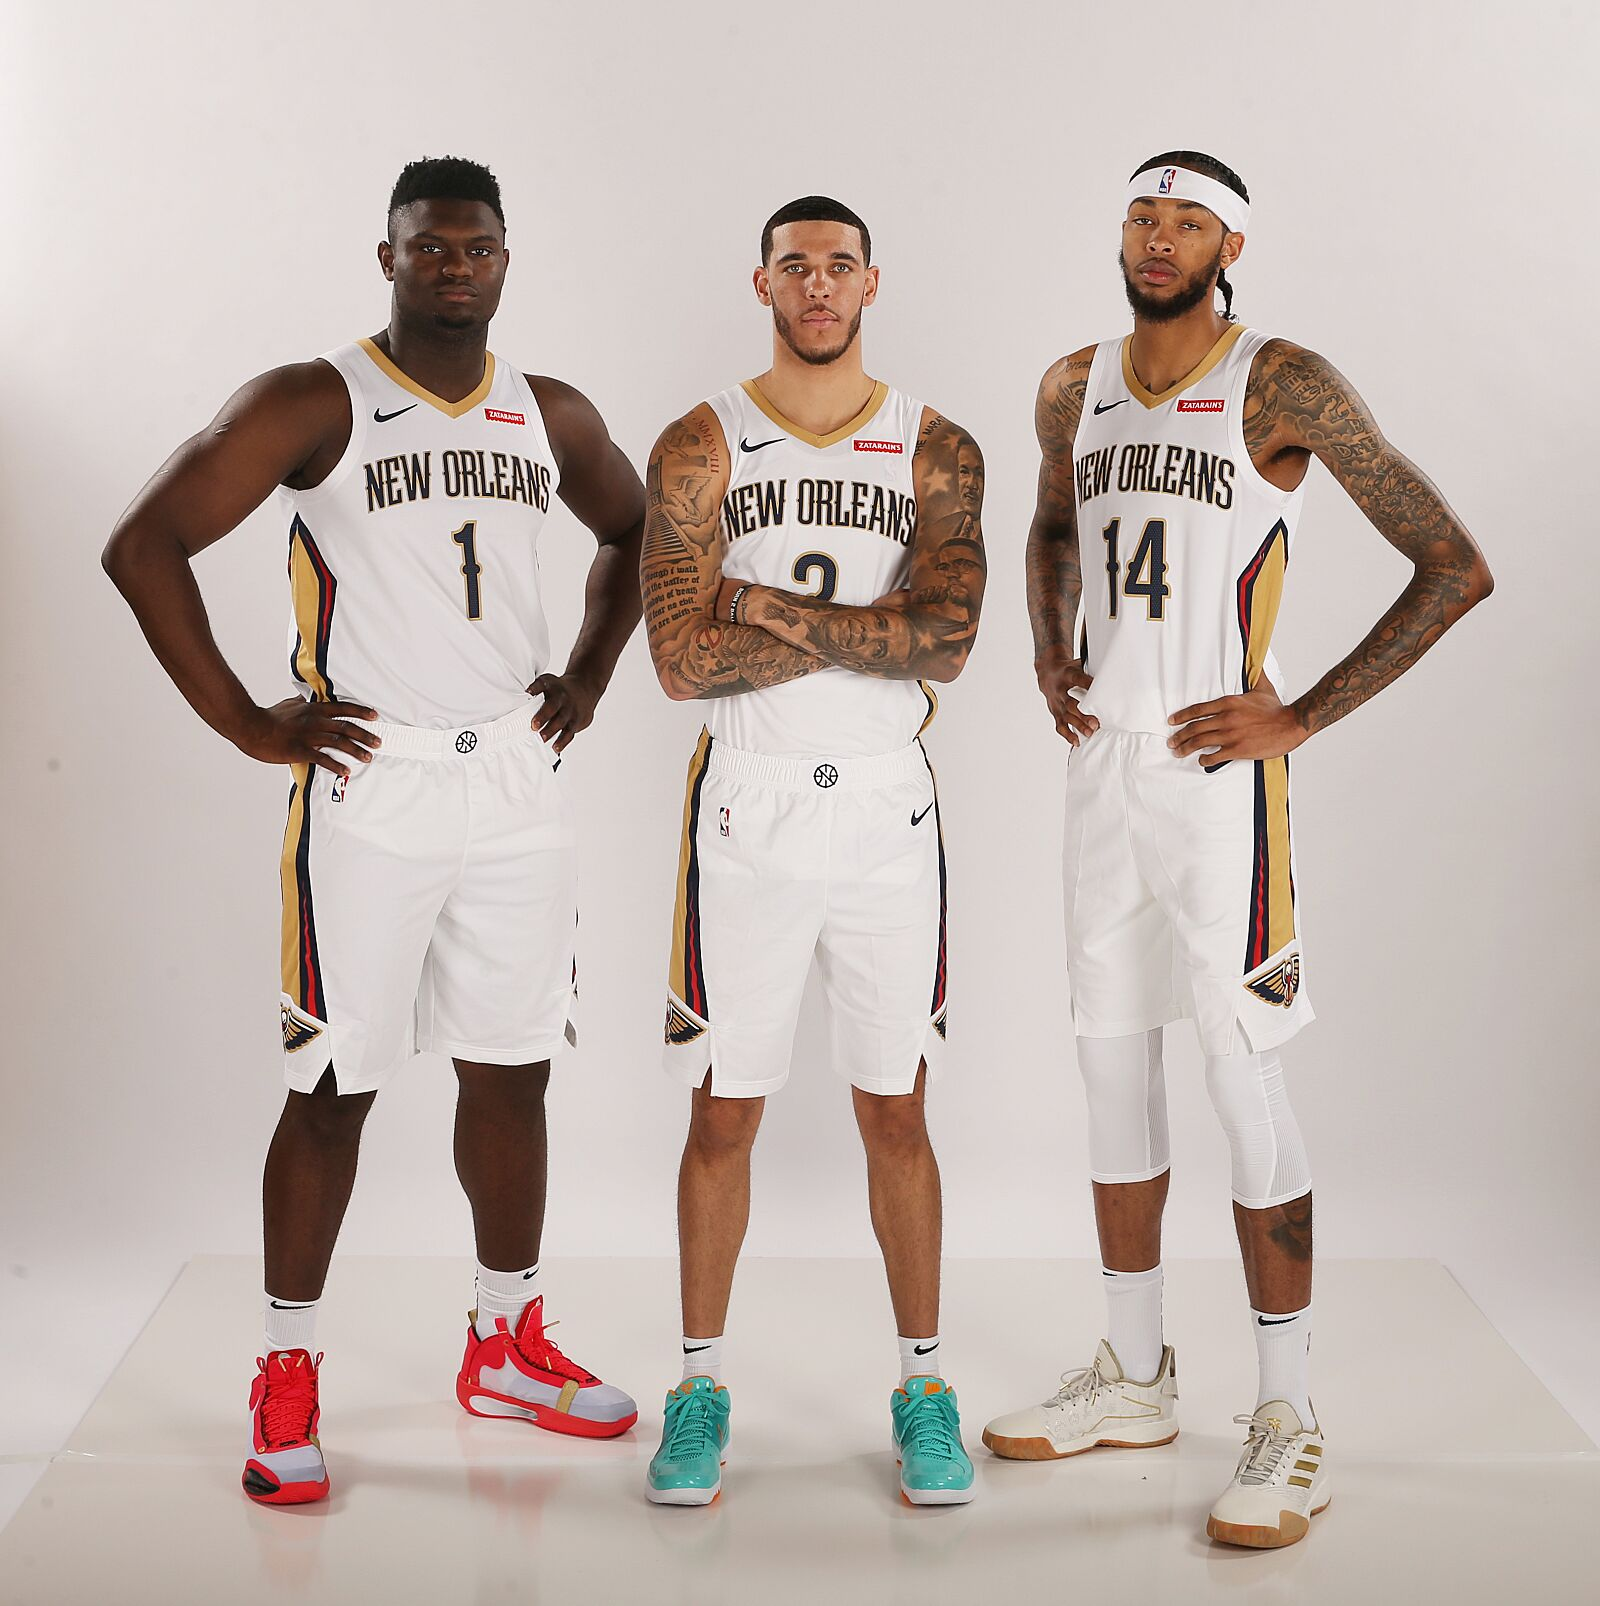 New Orleans Pelicans 5 Reasons Team S Hype Is The Real Deal